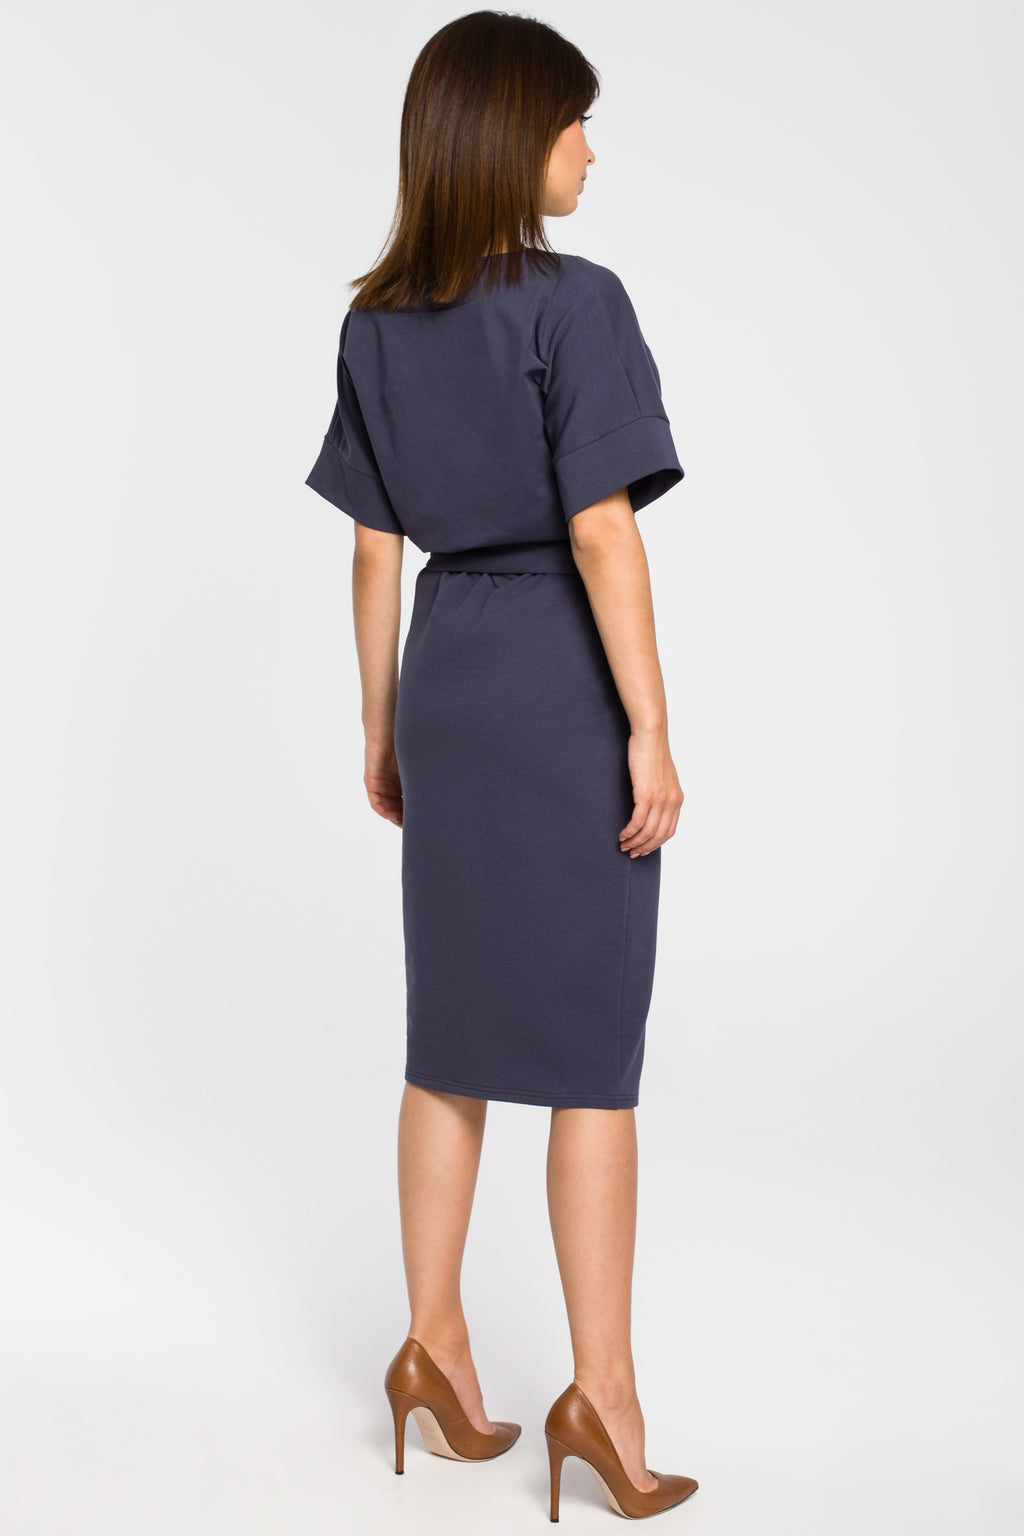 Blue Cotton Midi Dress With A Front Split - So Chic Boutique